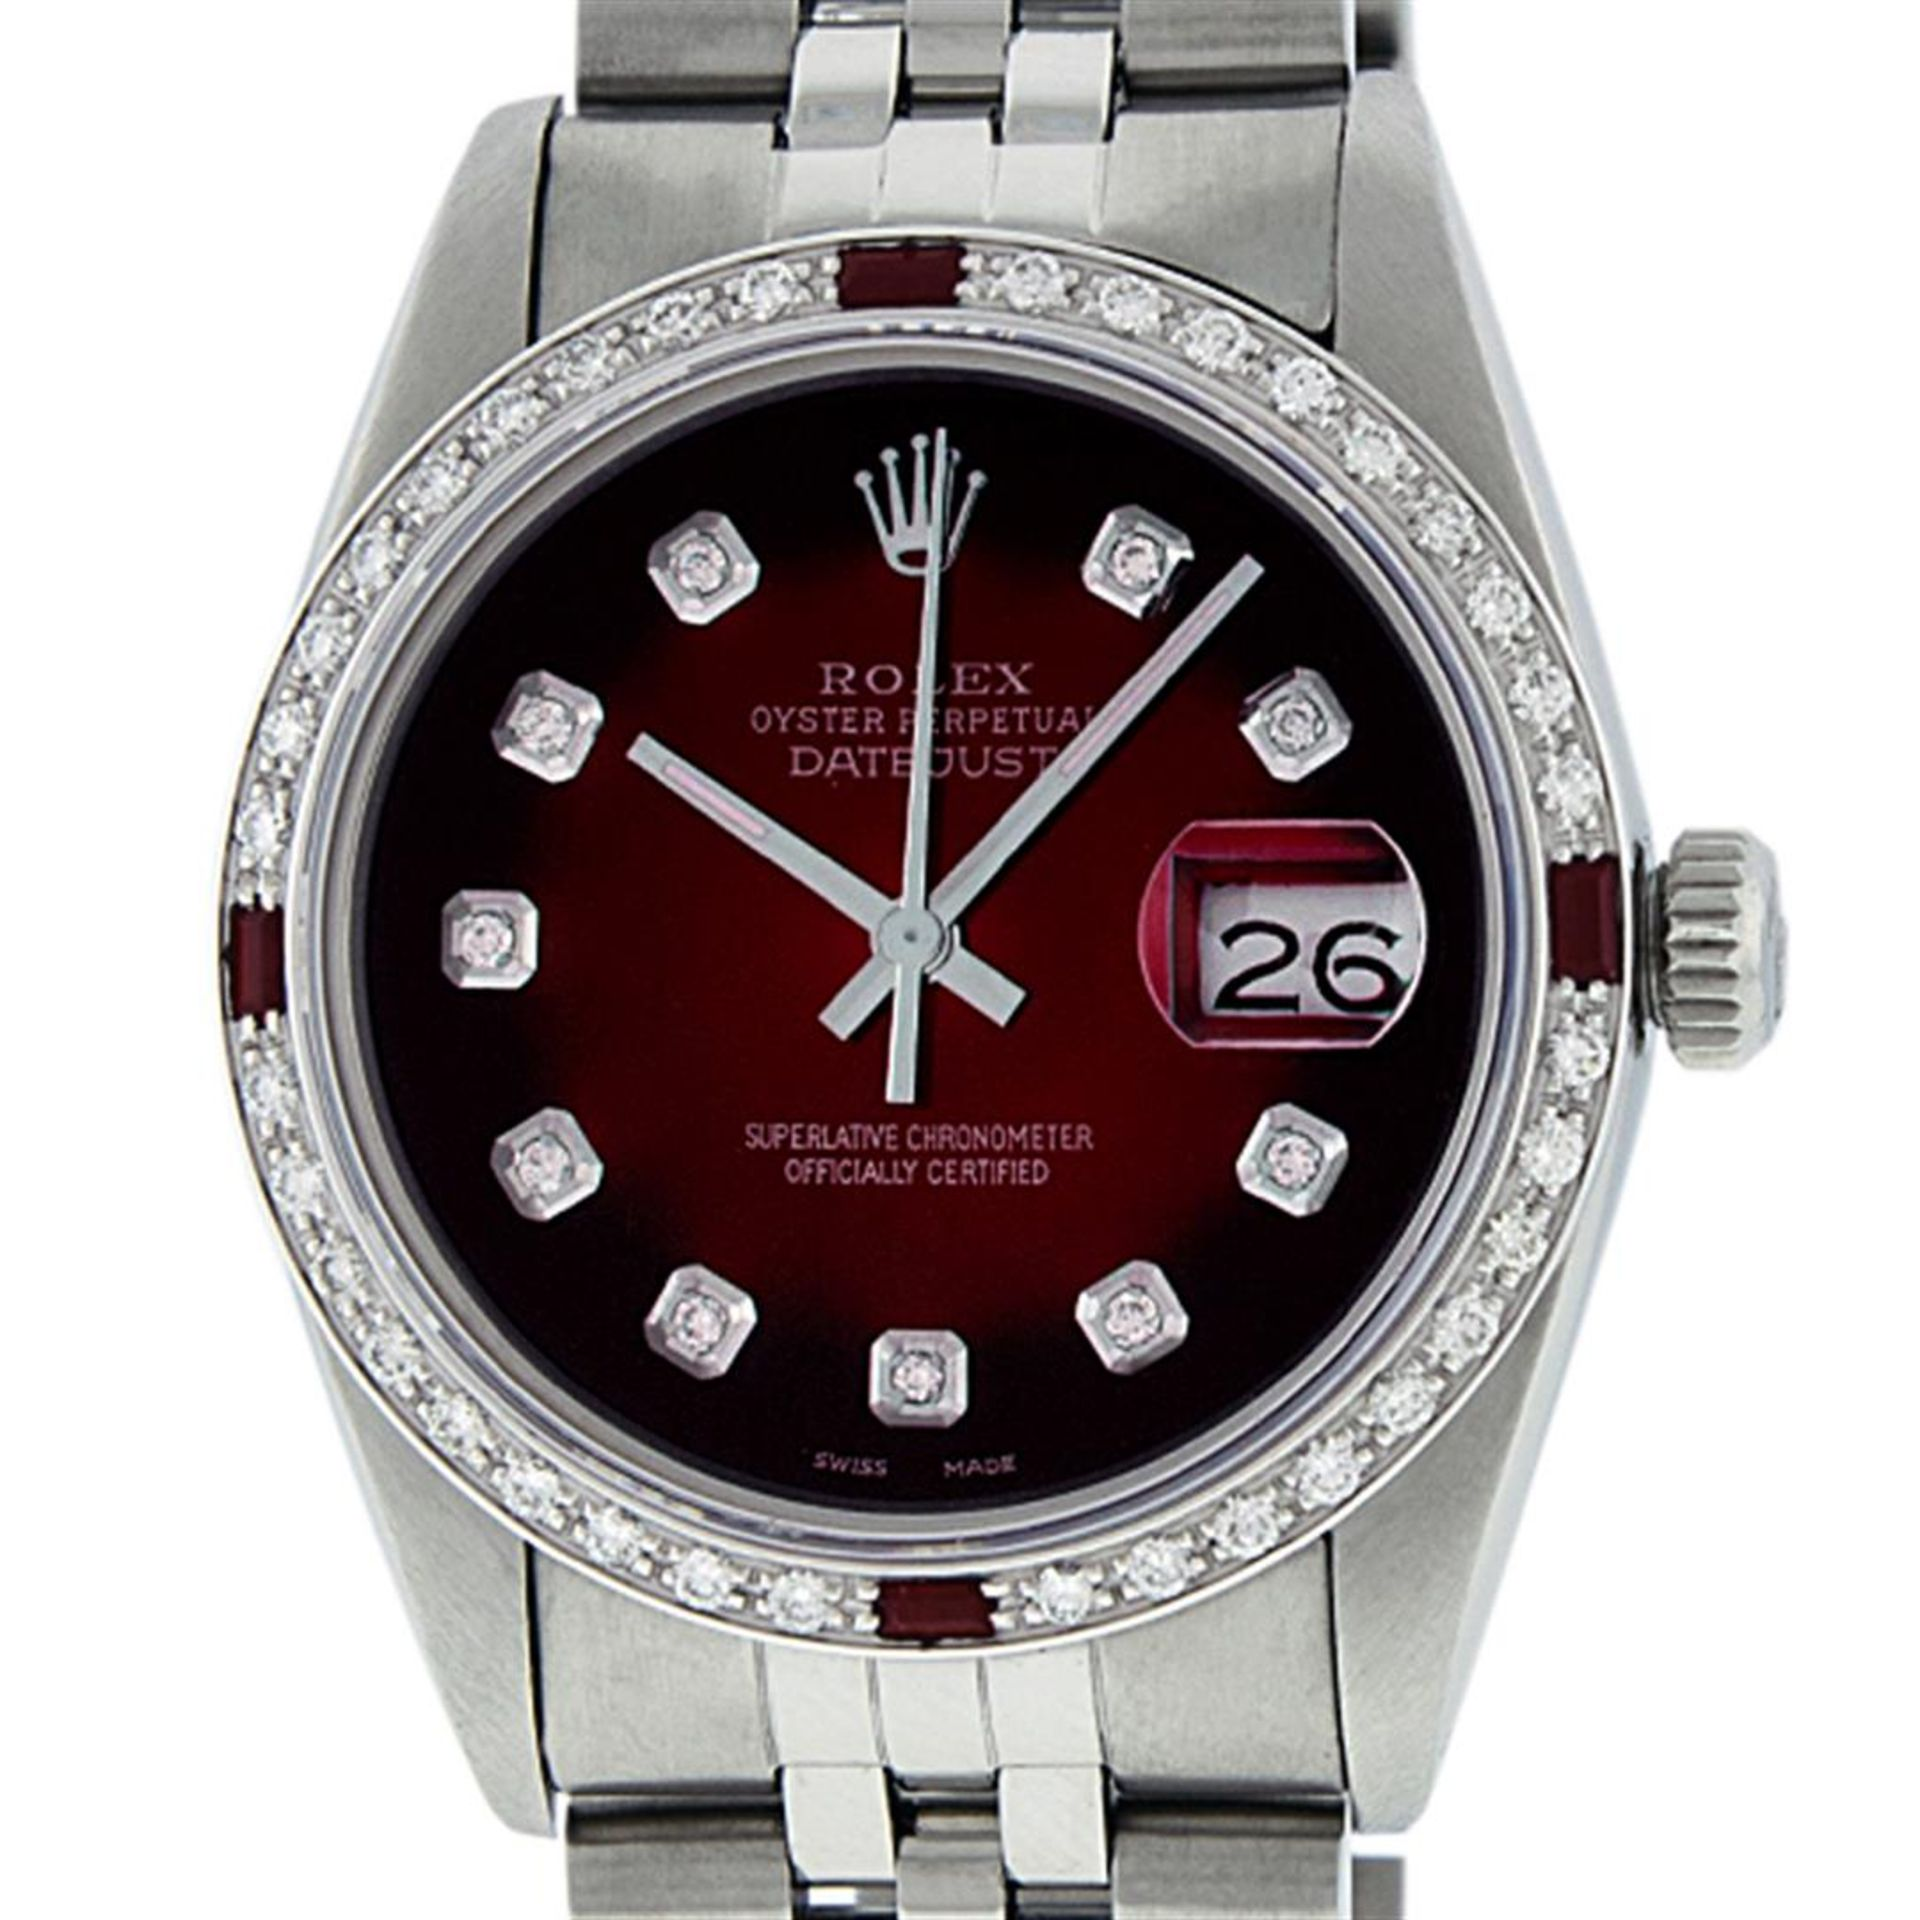 Rolex Mens Stainless Steel Red Vignette Diamond & Ruby Datejust Wristwatch - Image 2 of 9